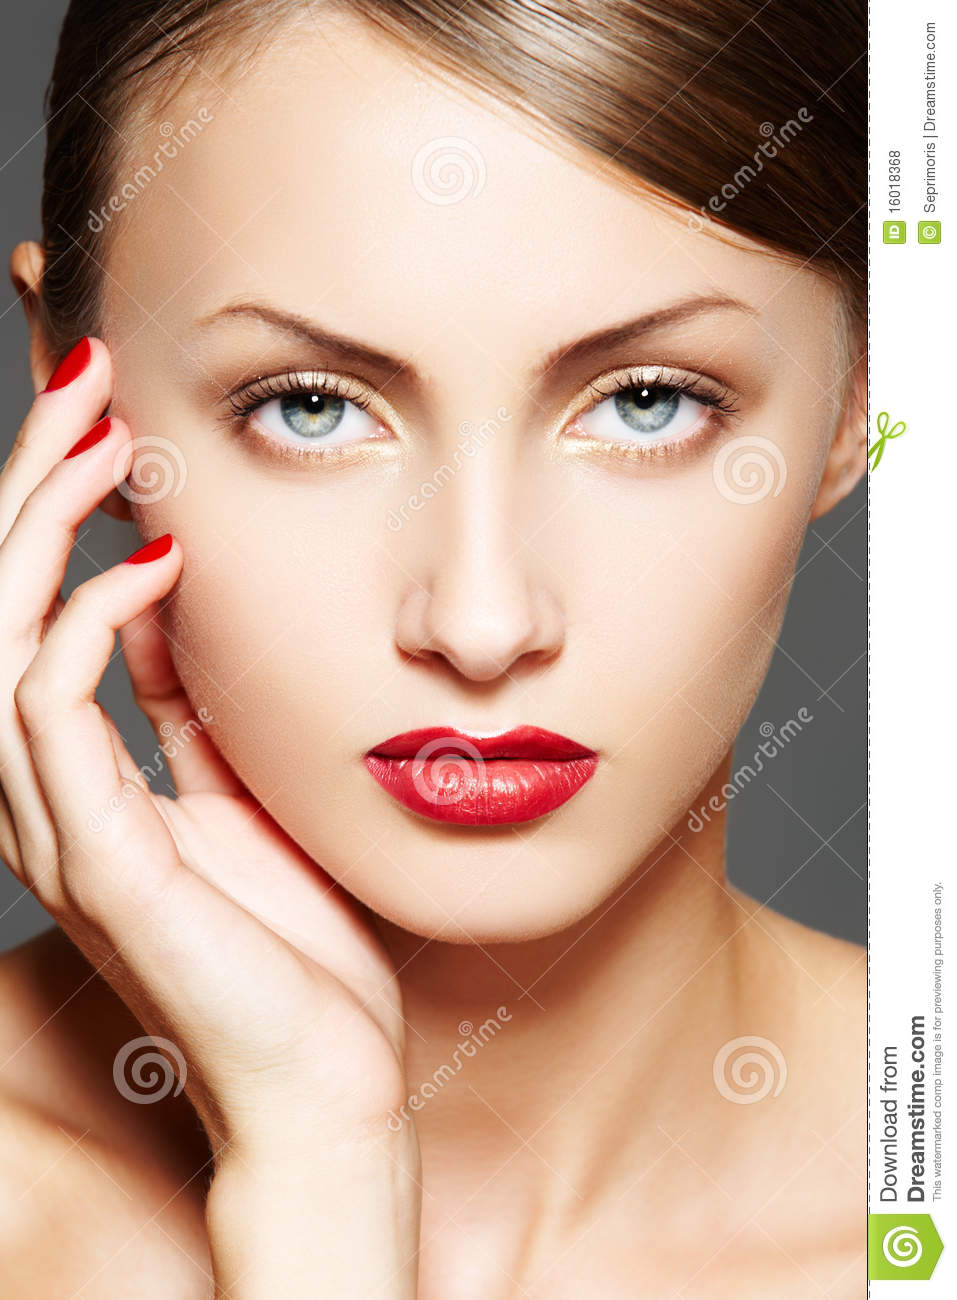 Cosmetic. Luxury woman model with glamour make-up